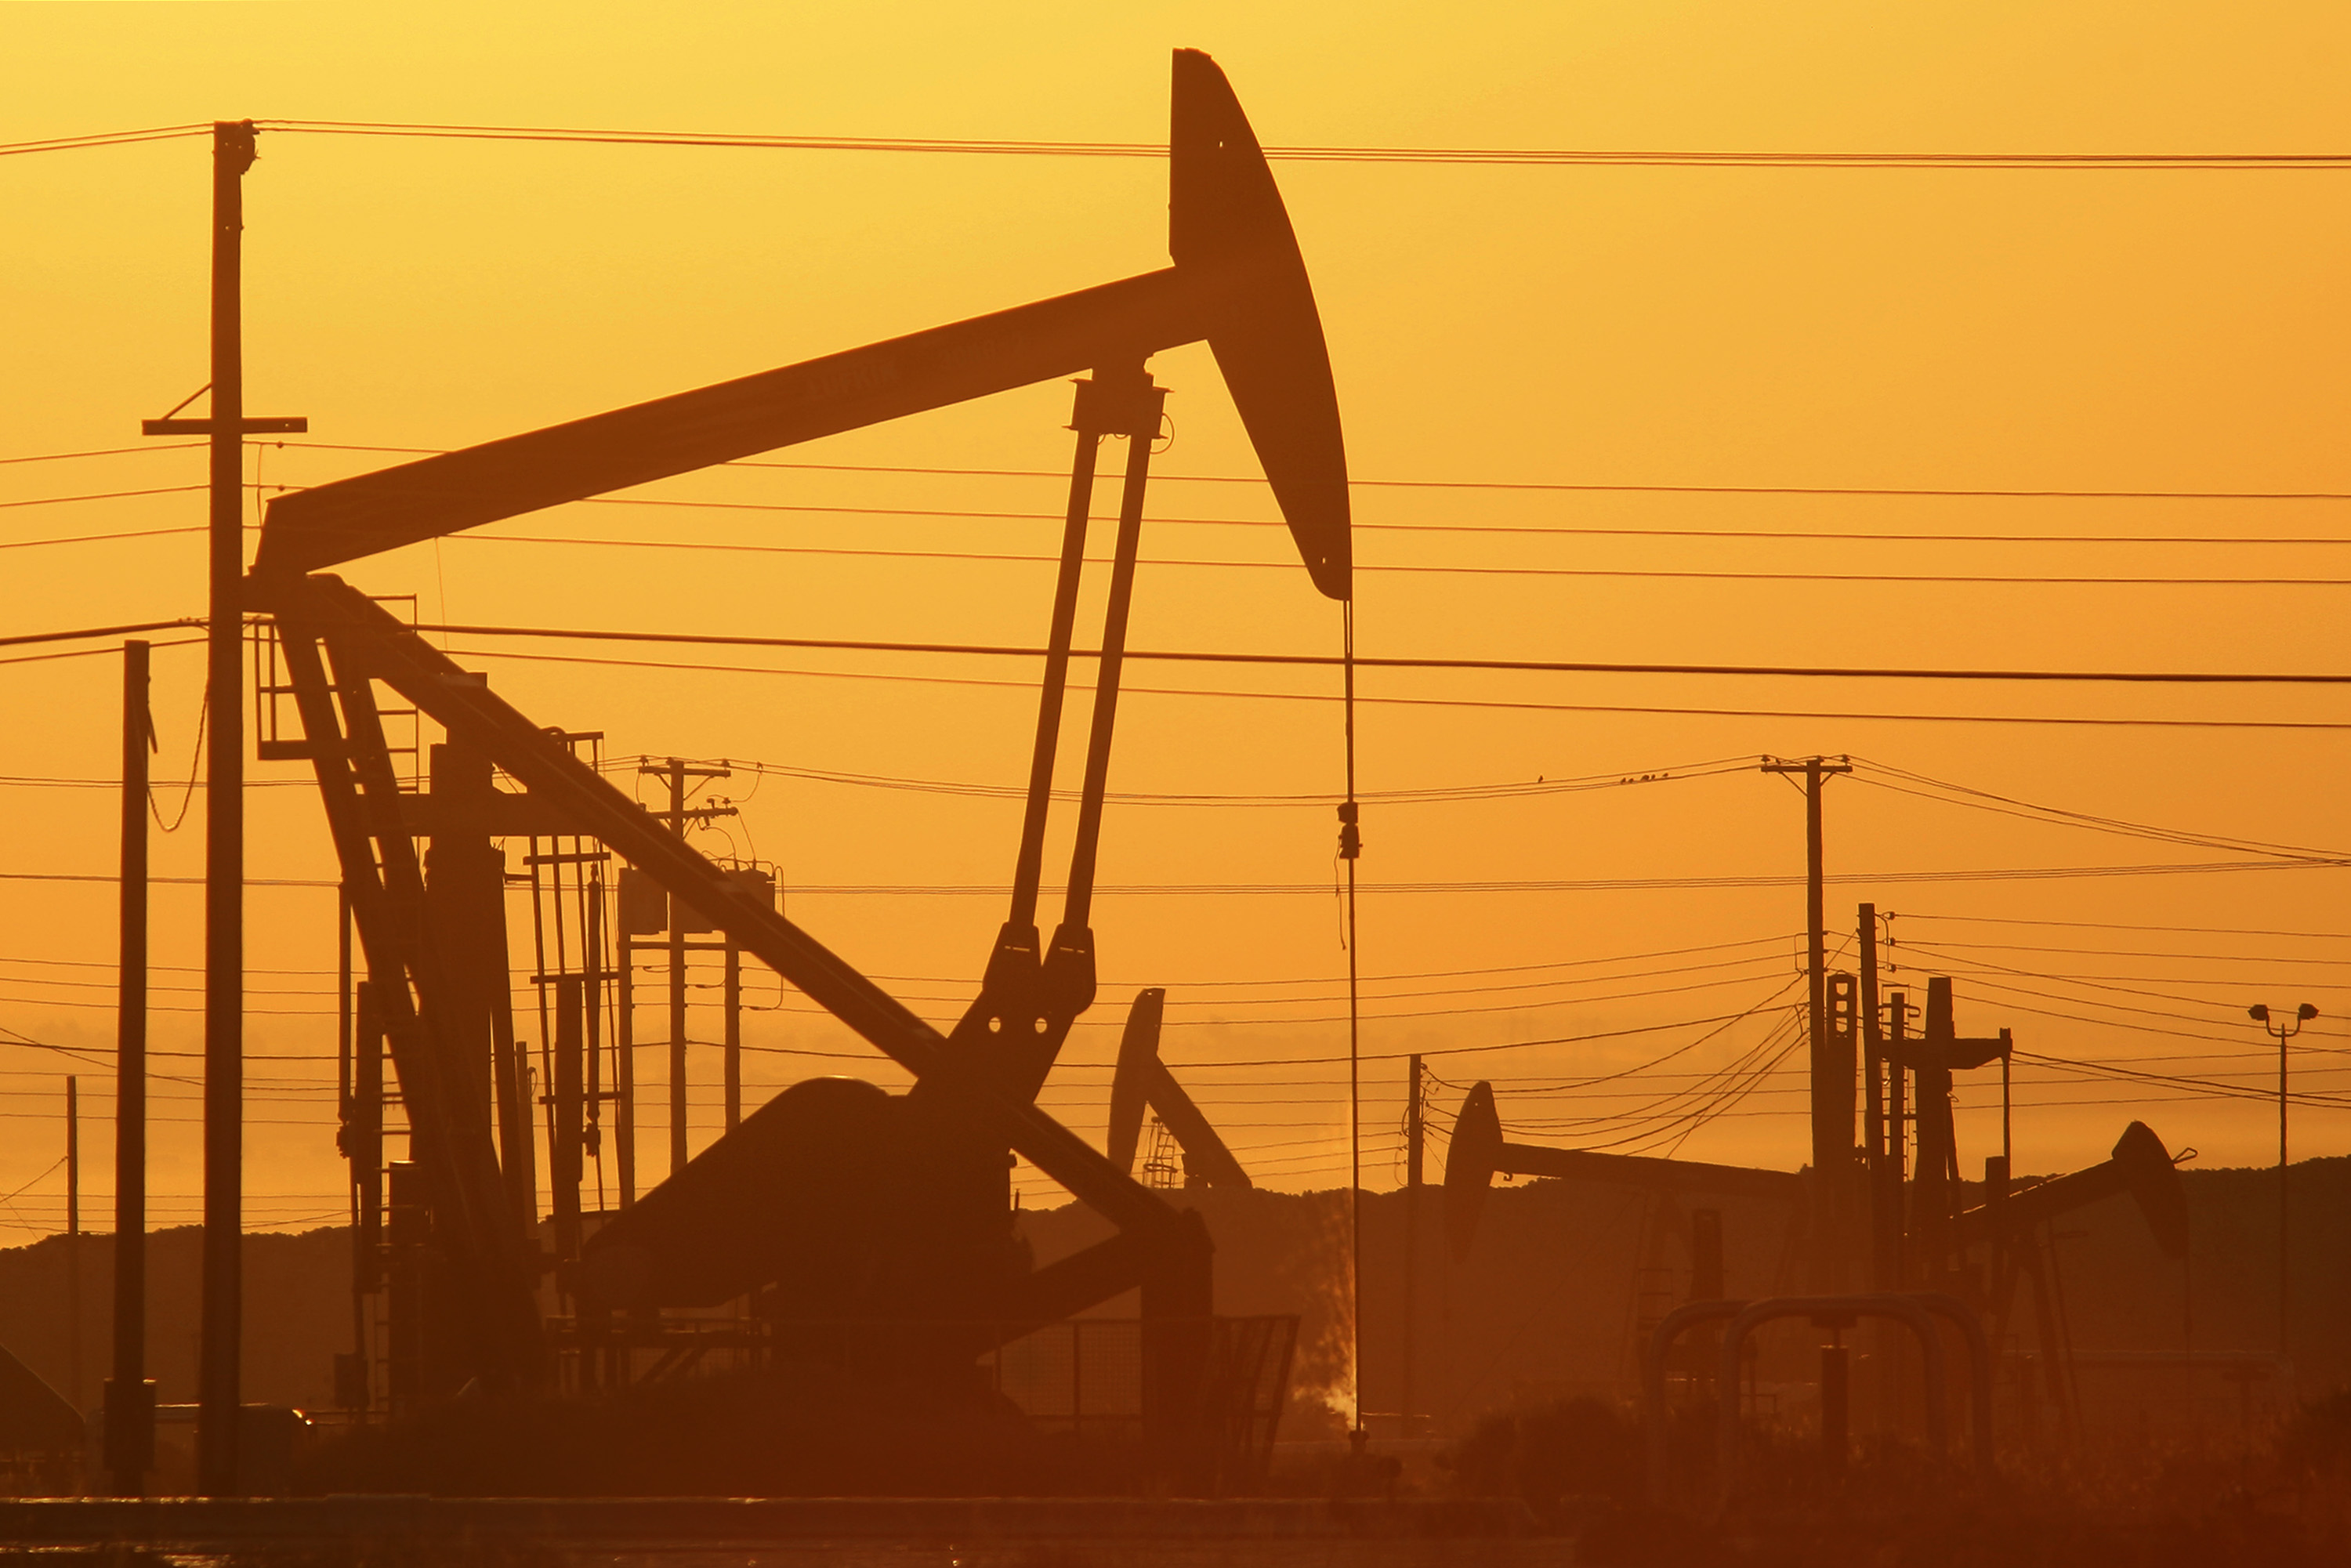 Pump jacks are seen at dawn in an oil field over the Monterey Shale formation where gas and oil extraction using hydraulic fracturing, or fracking, is on the verge of a boom on March 24, 2014 near Lost Hills, California. (David McNew/Getty Images)